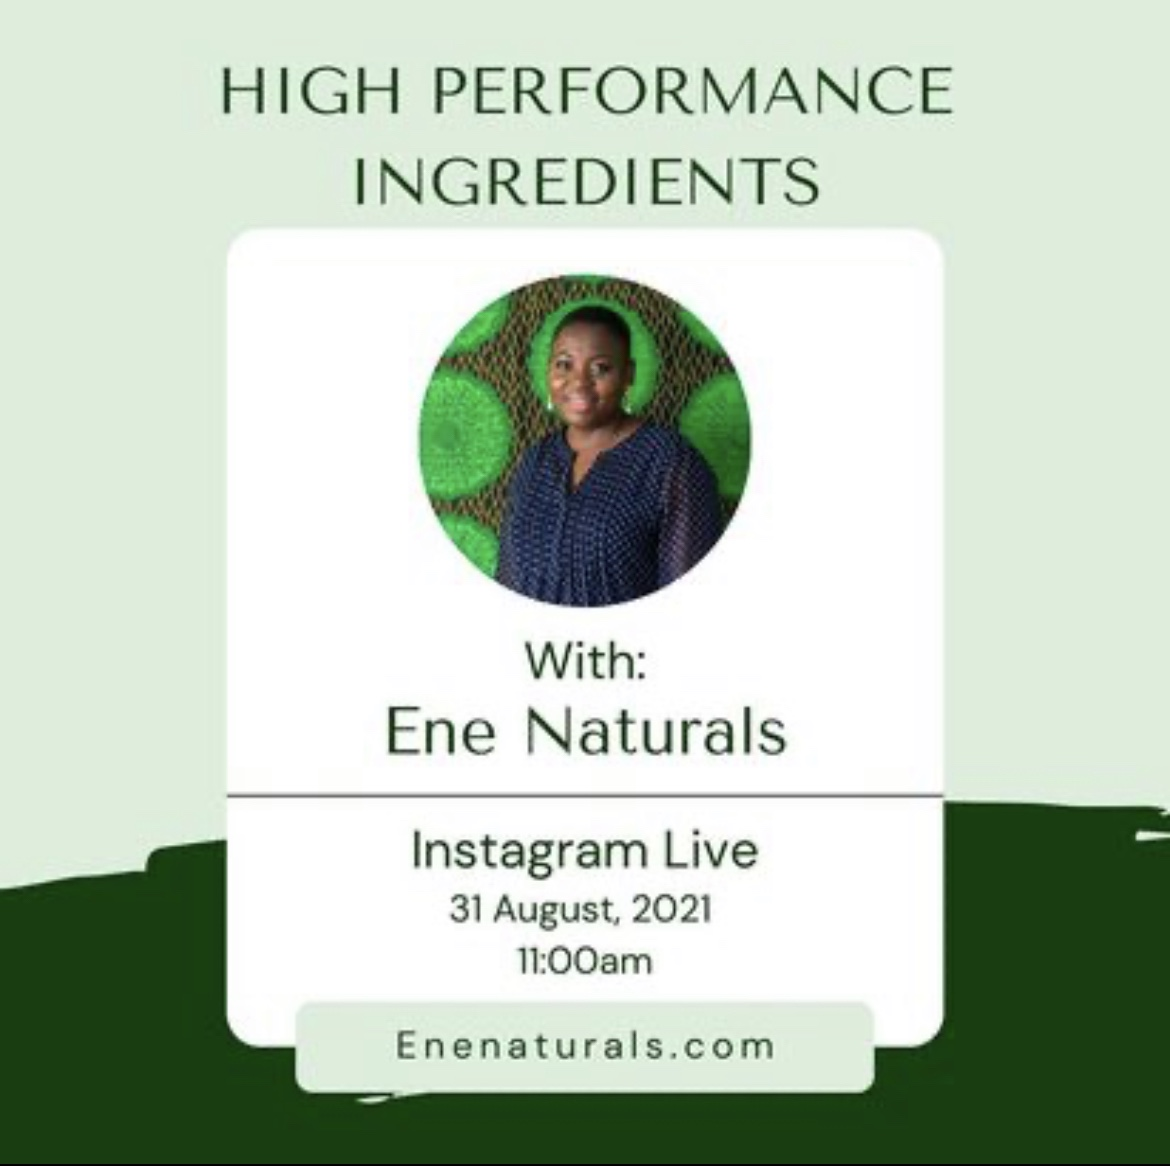 Formulating with high performance Ingredients